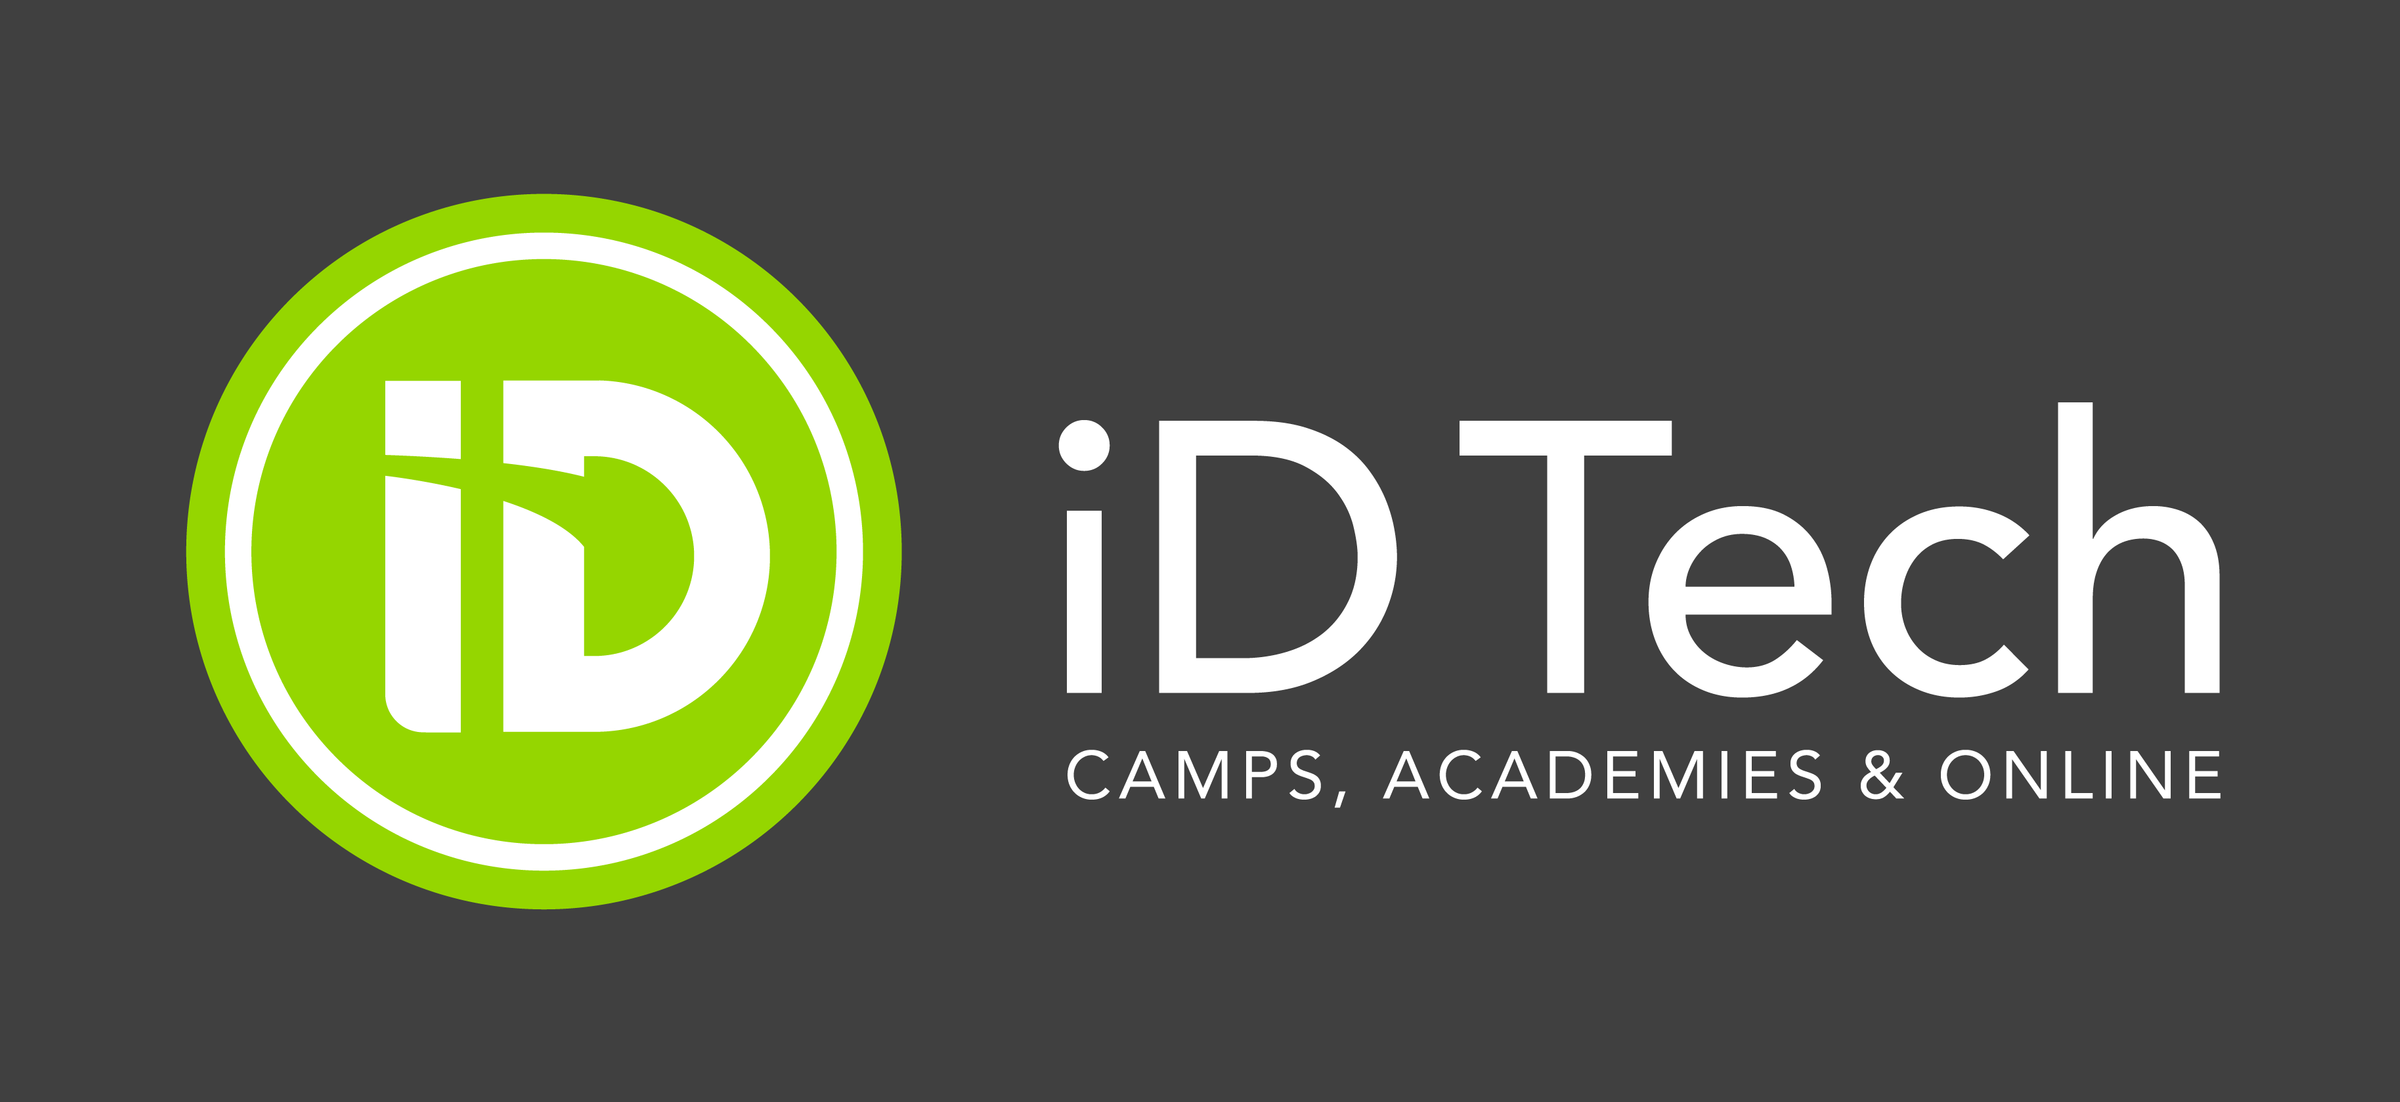 iD Tech Camps: #1 in STEM Education - Held at The University of Texas at Dallas